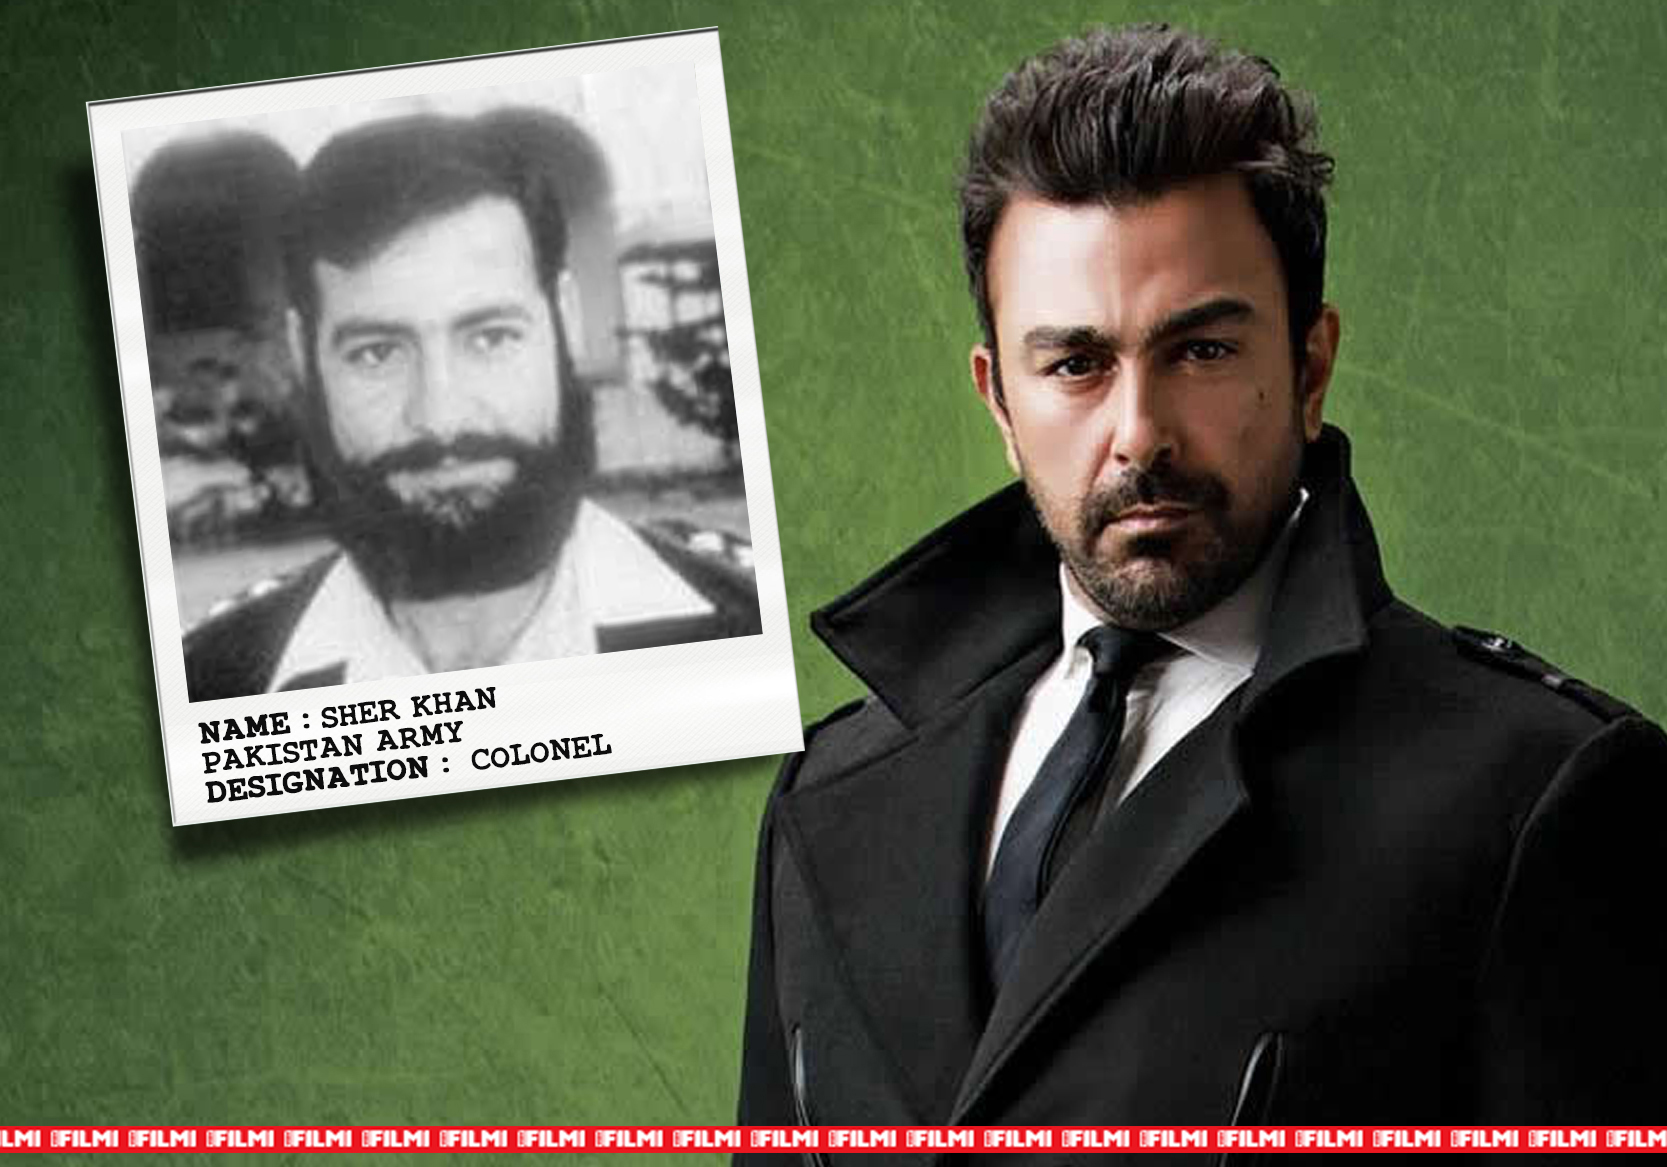 shaan shahid as SHER KHAN